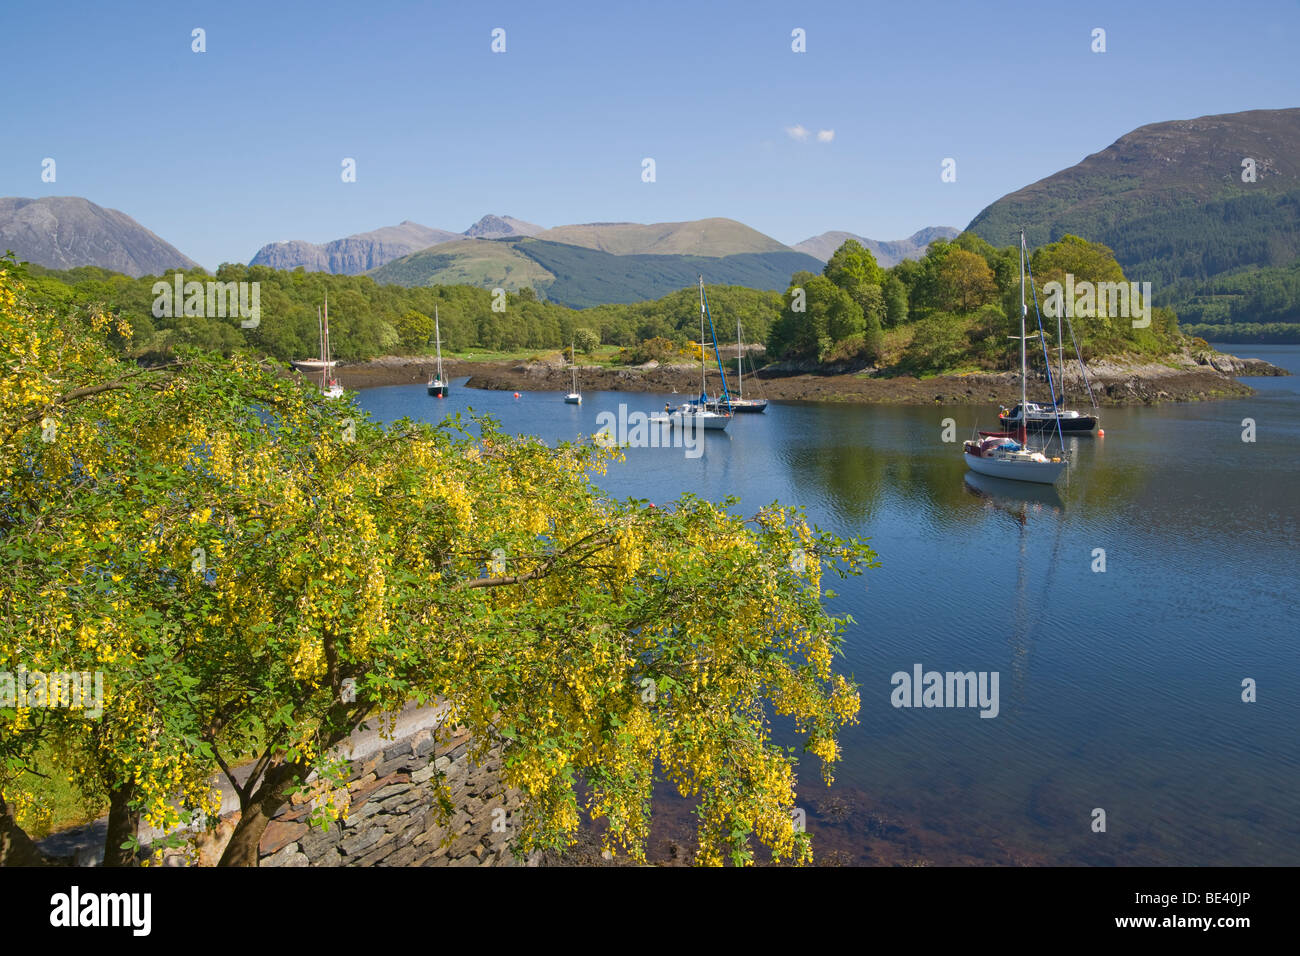 Loch Leven, Bishop's Bay, North Ballachulish, Highland Region, Scotland, June, 2009 - Stock Image